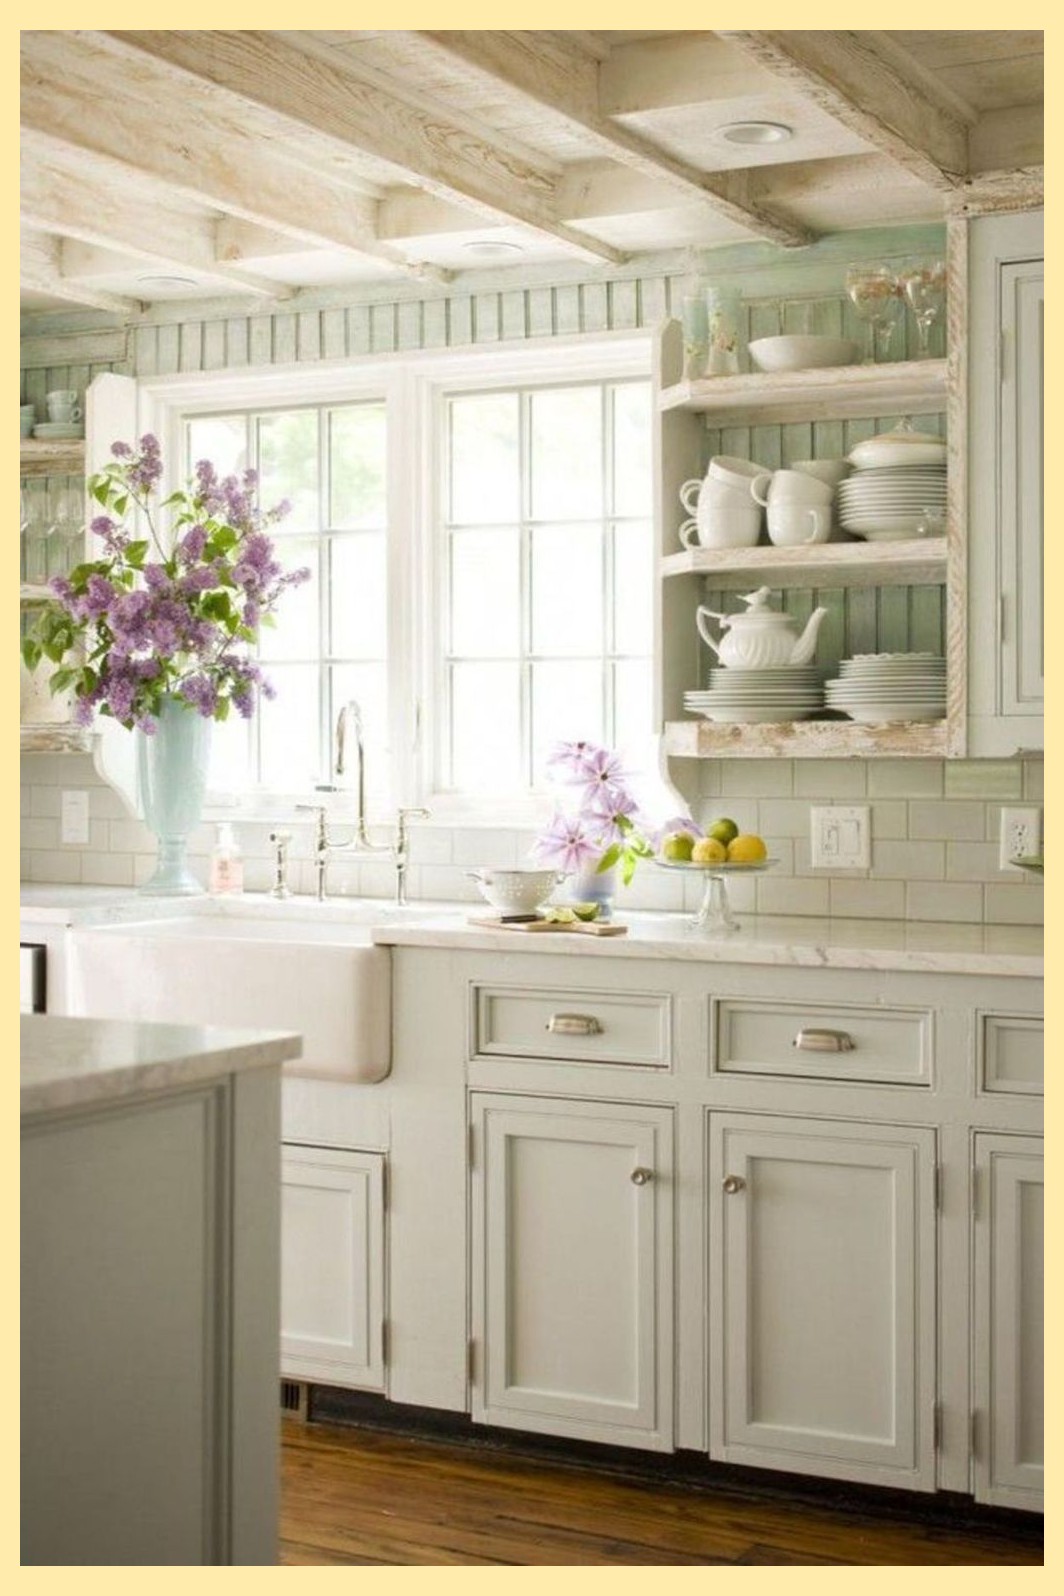 25 Lovely Shabby Chic Kitchen Ideas Striking Rooms For Cooking Shabbychickitchen Farm Style Kitchen Shabby Chic Kitchen Cabinets Country Kitchen Designs